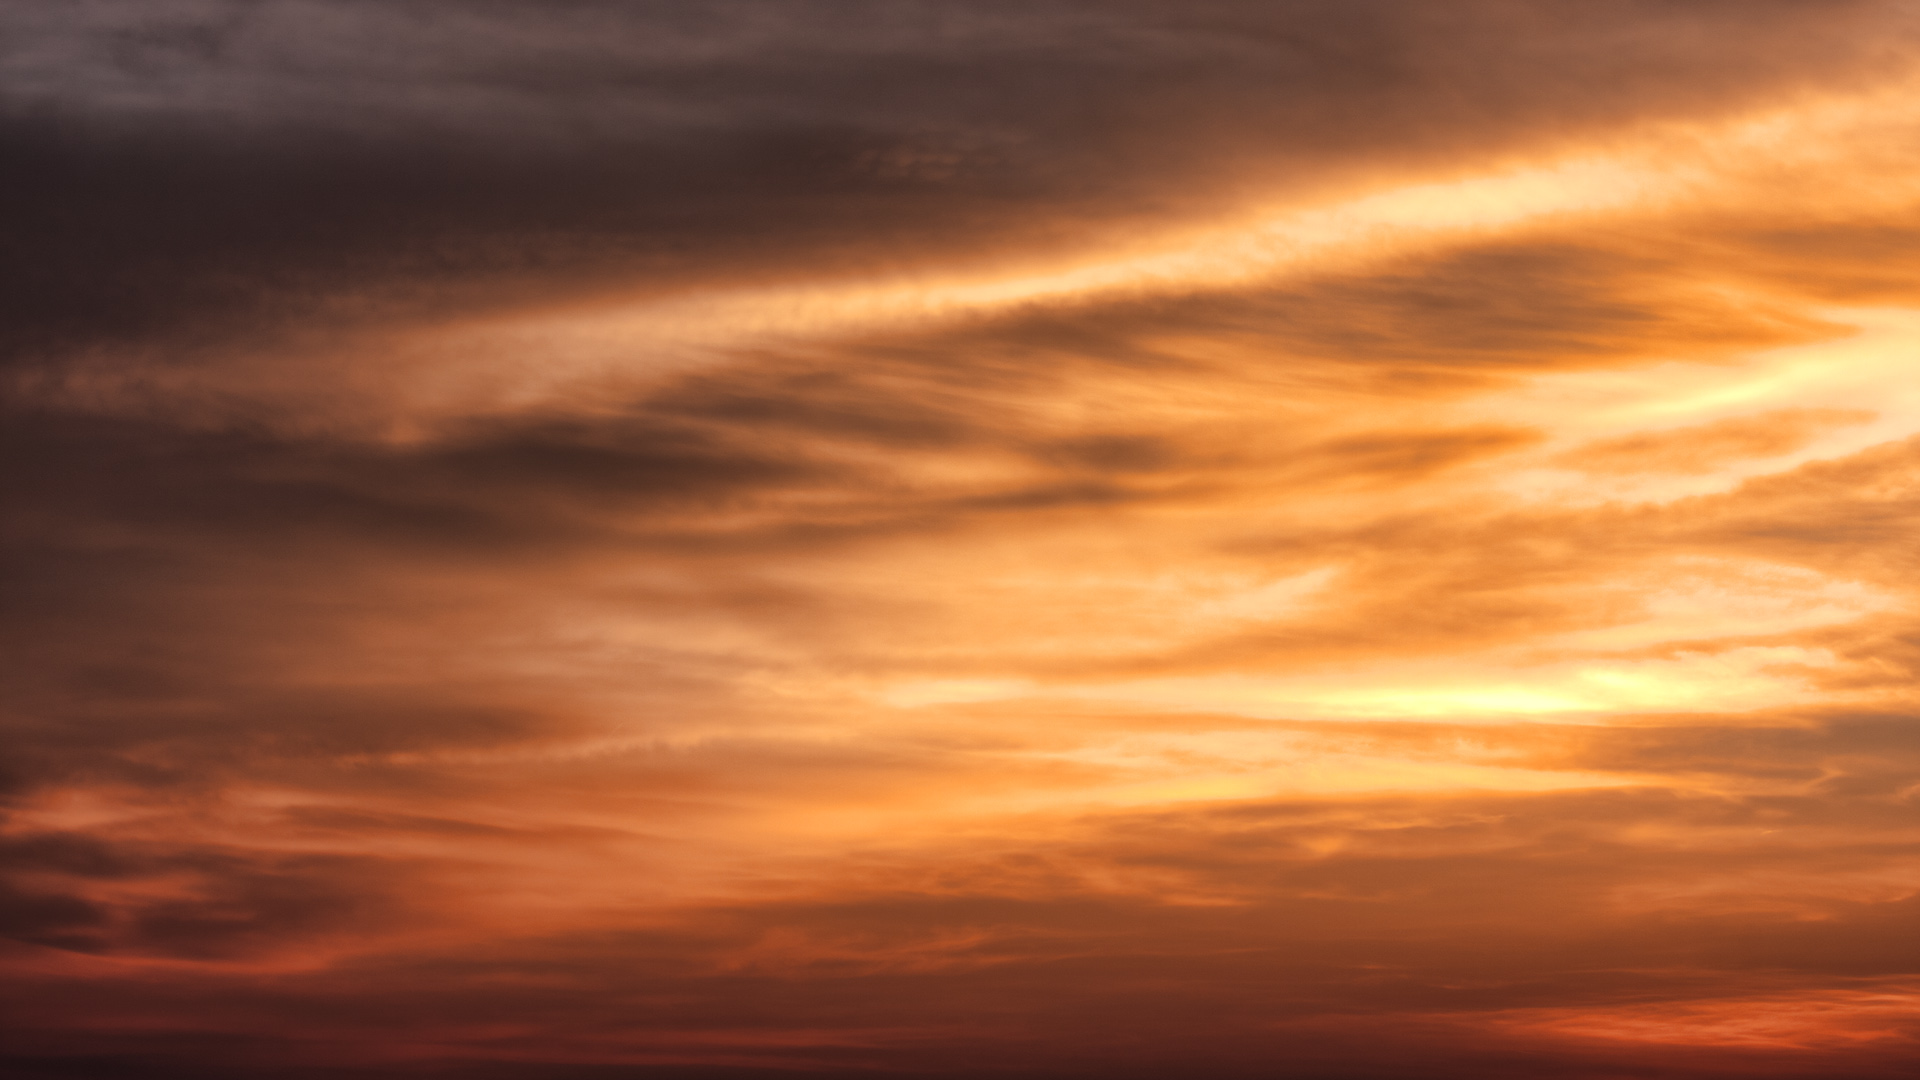 Sunset Dramatic Sky Clouds Background HD